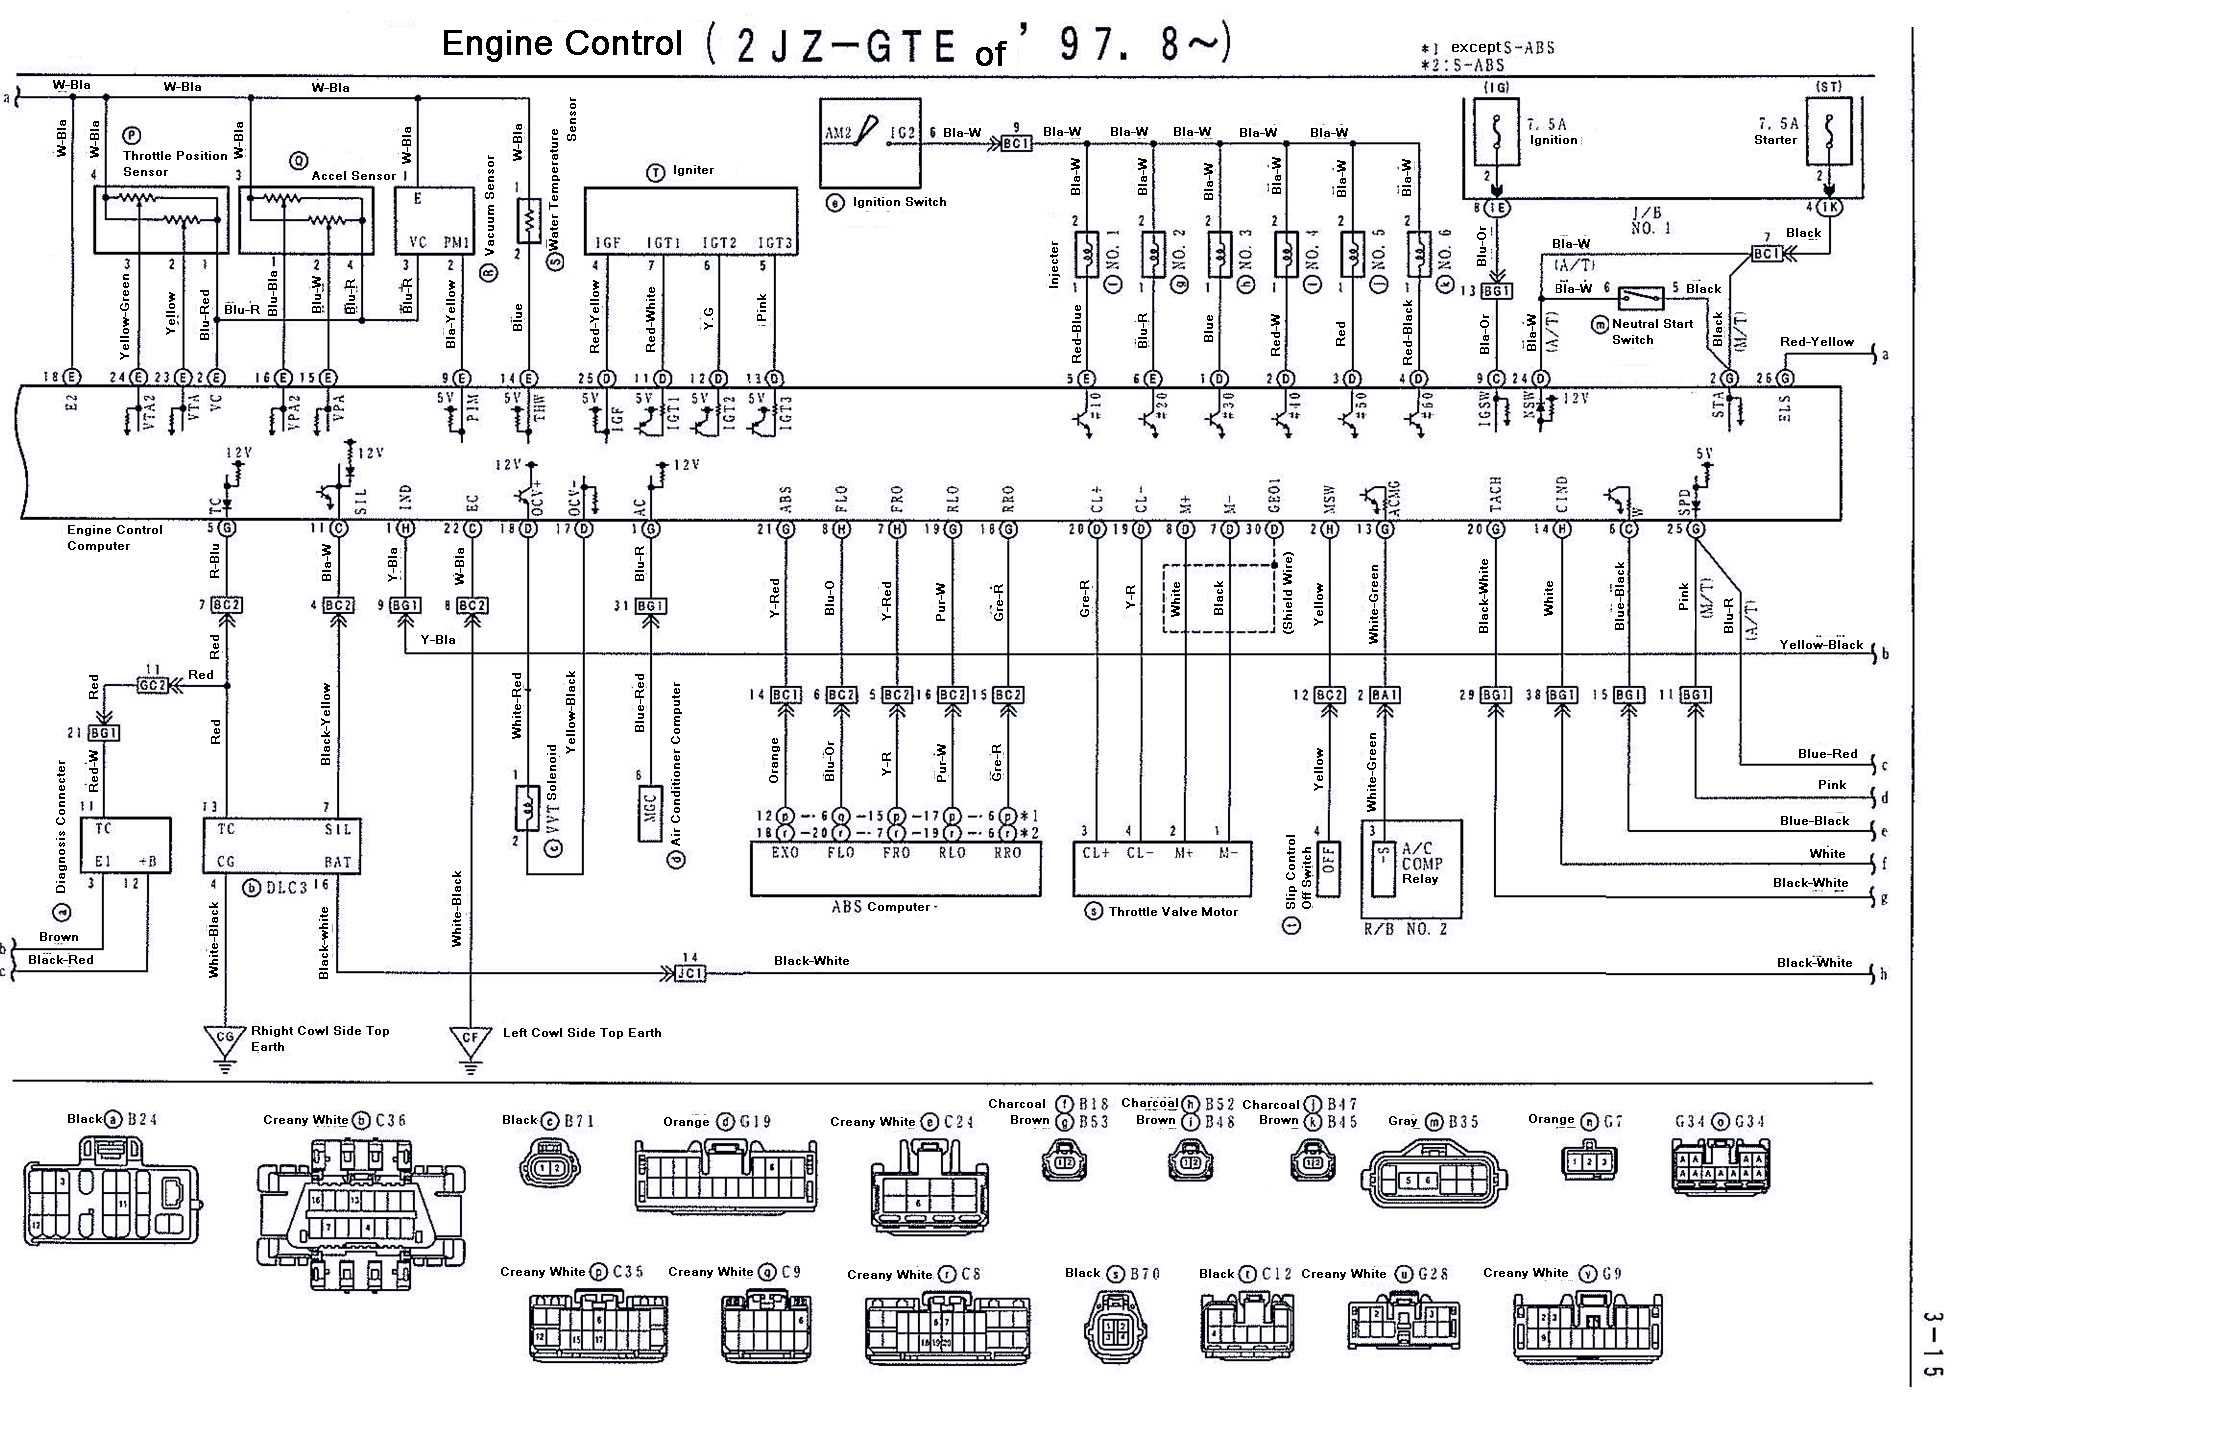 supra 2jzgte vvti wiring diagrams 97 8 02 2jzgarage disclaimer